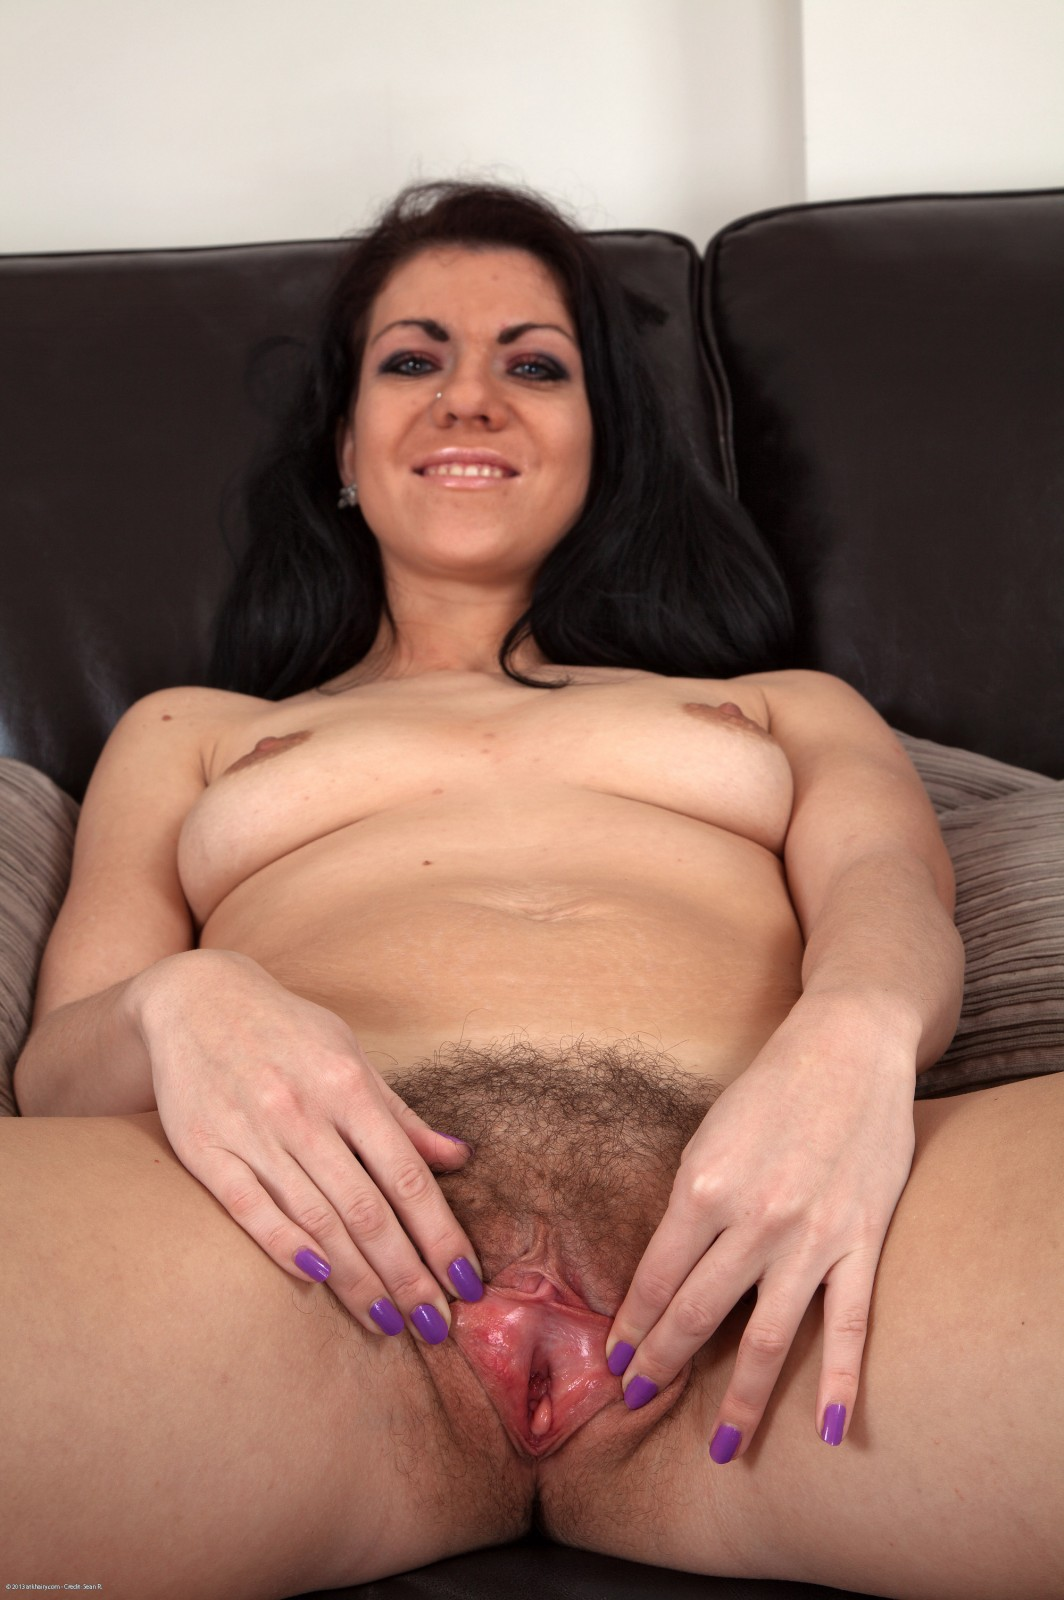 18 y o hairy pussy solo girl squirt 3